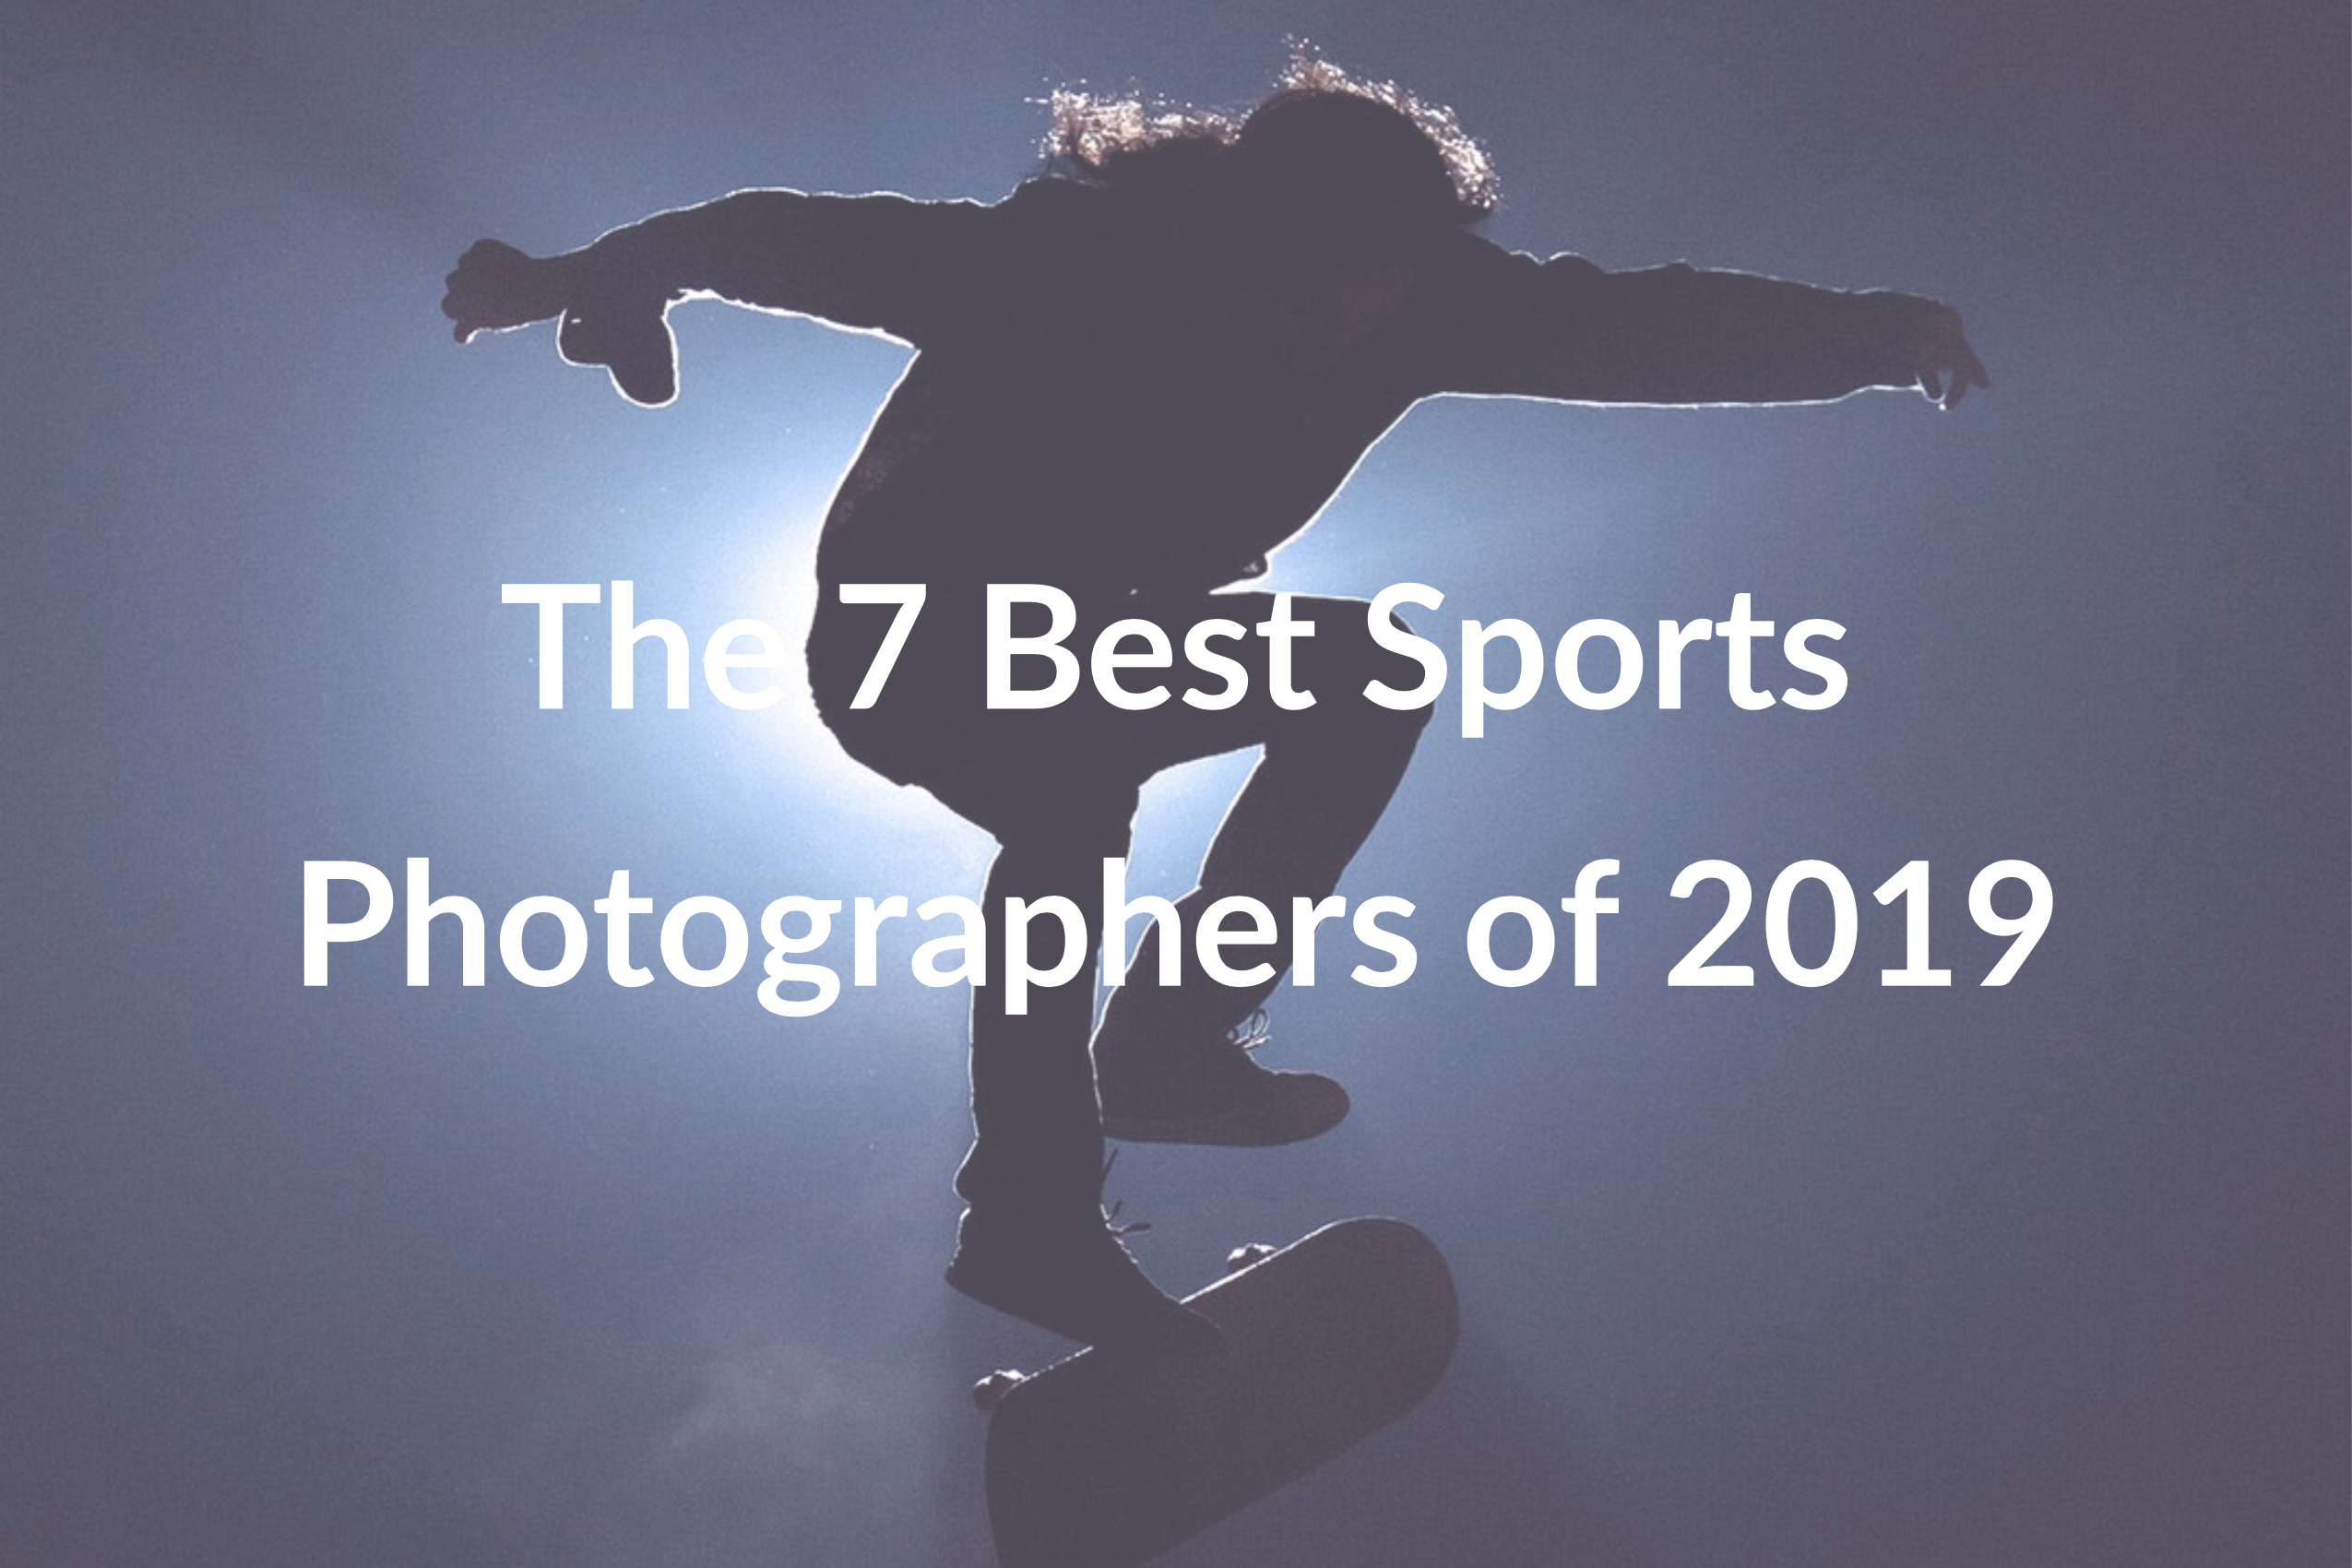 The 7 Best Sports Photographers to Follow in 2019